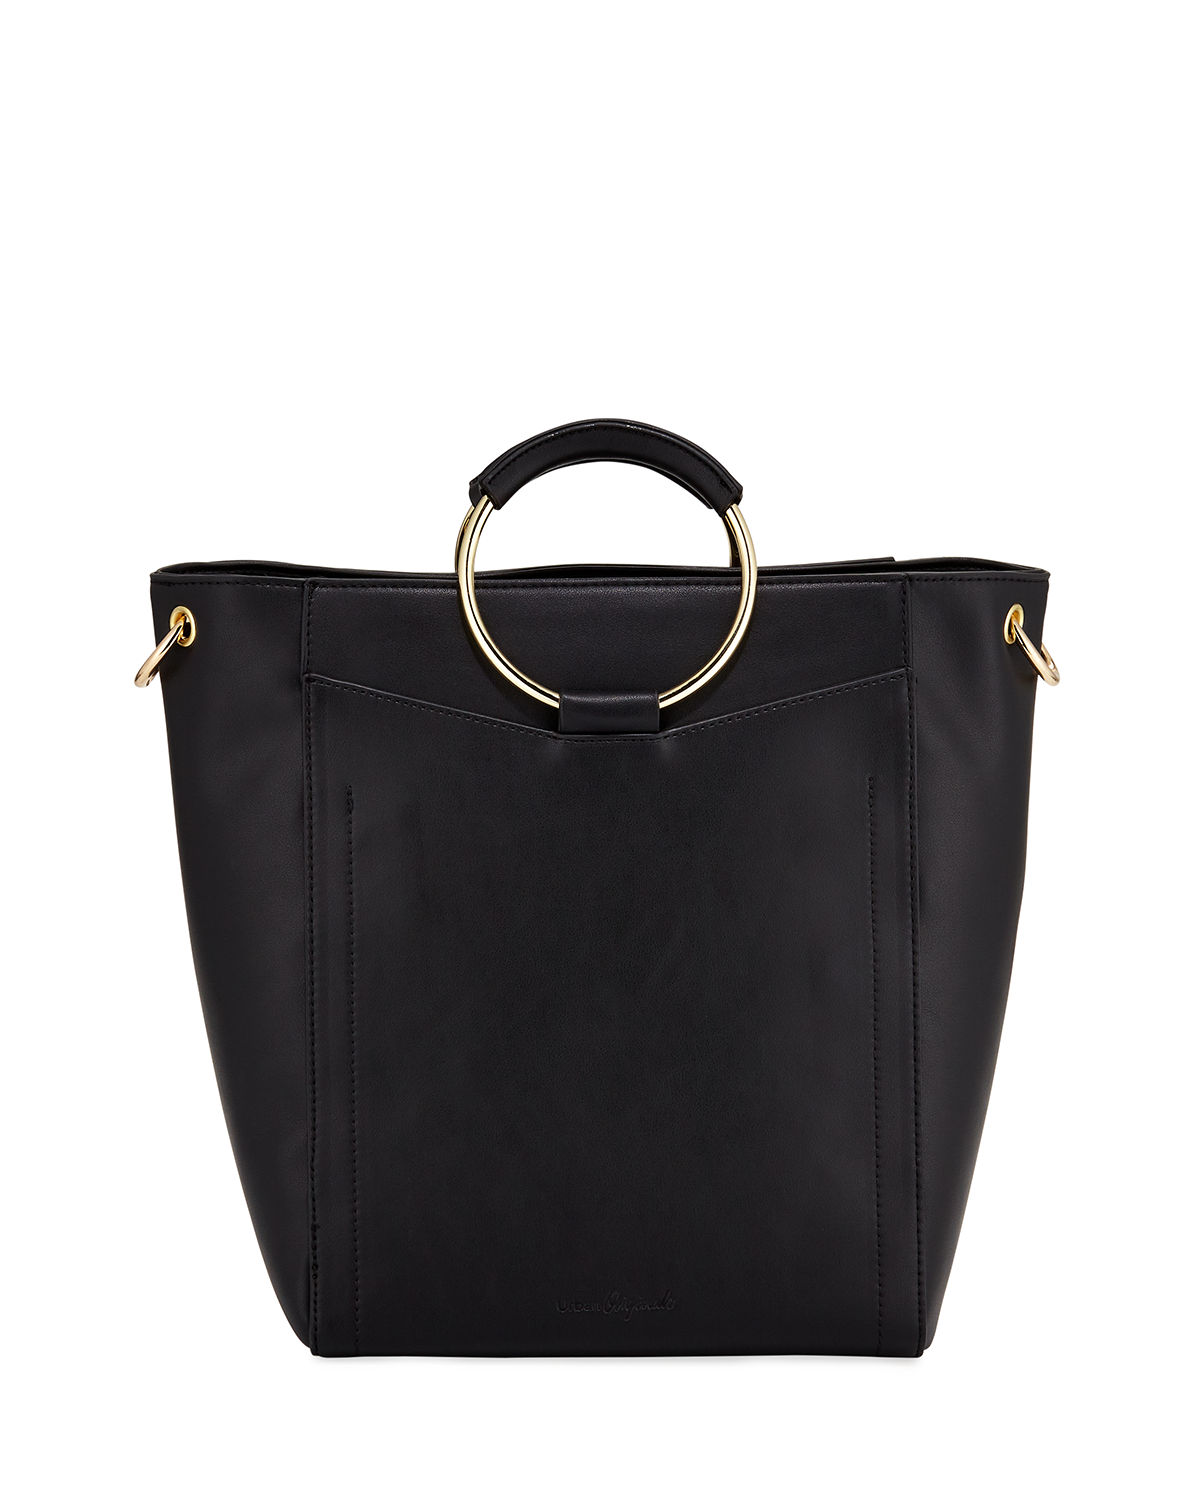 Urban Originals HARDSIDE RING-HANDLE LARGE TOTE BAG